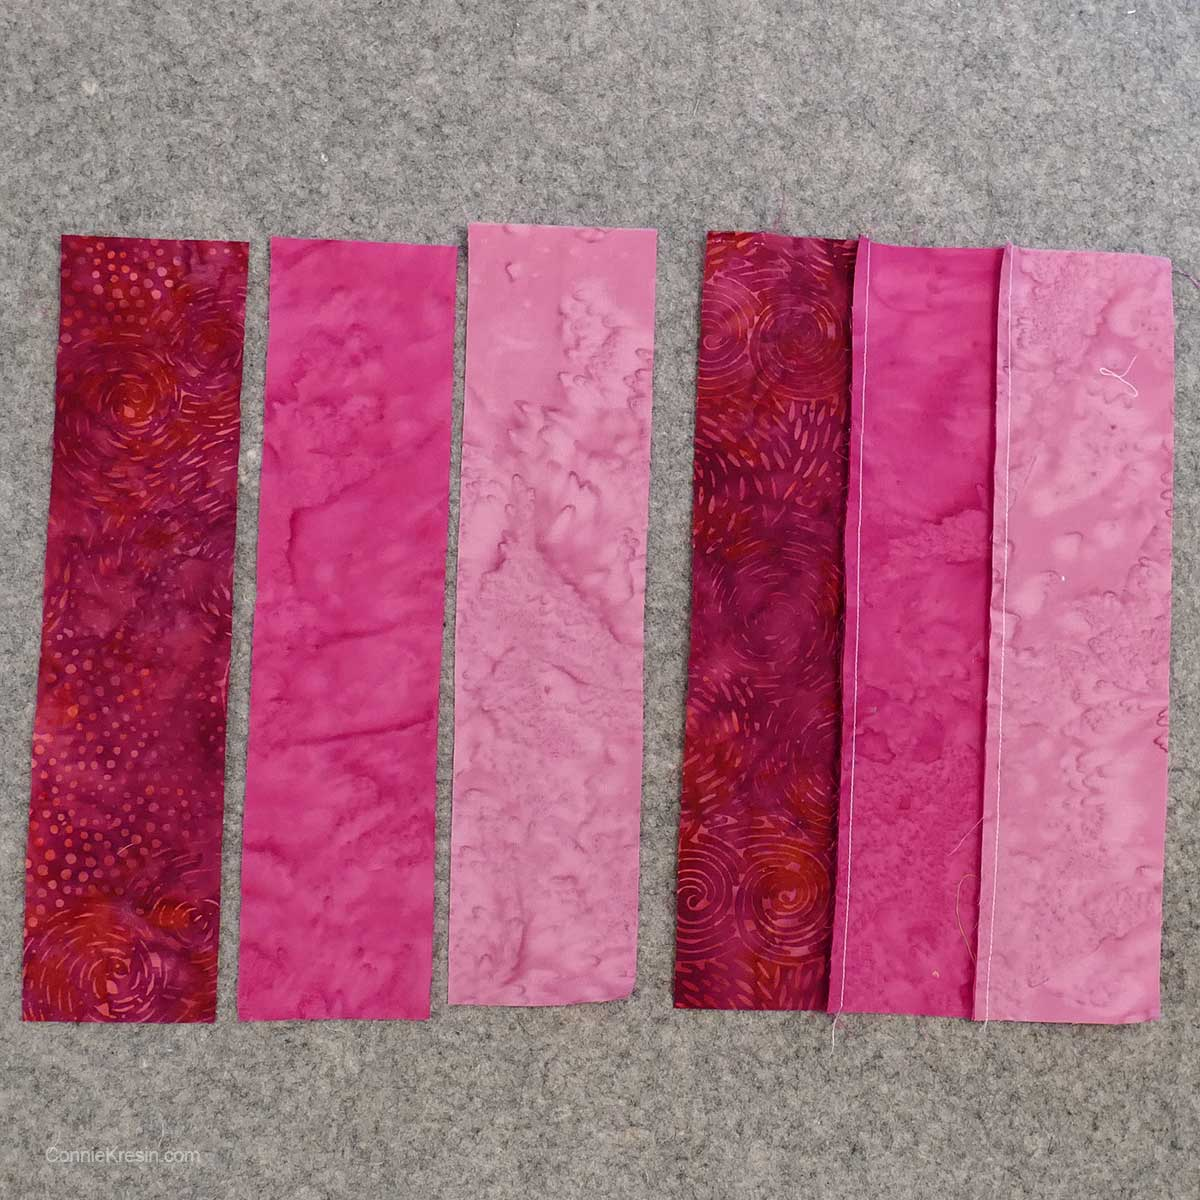 Sew the rainbow rail fence strips together